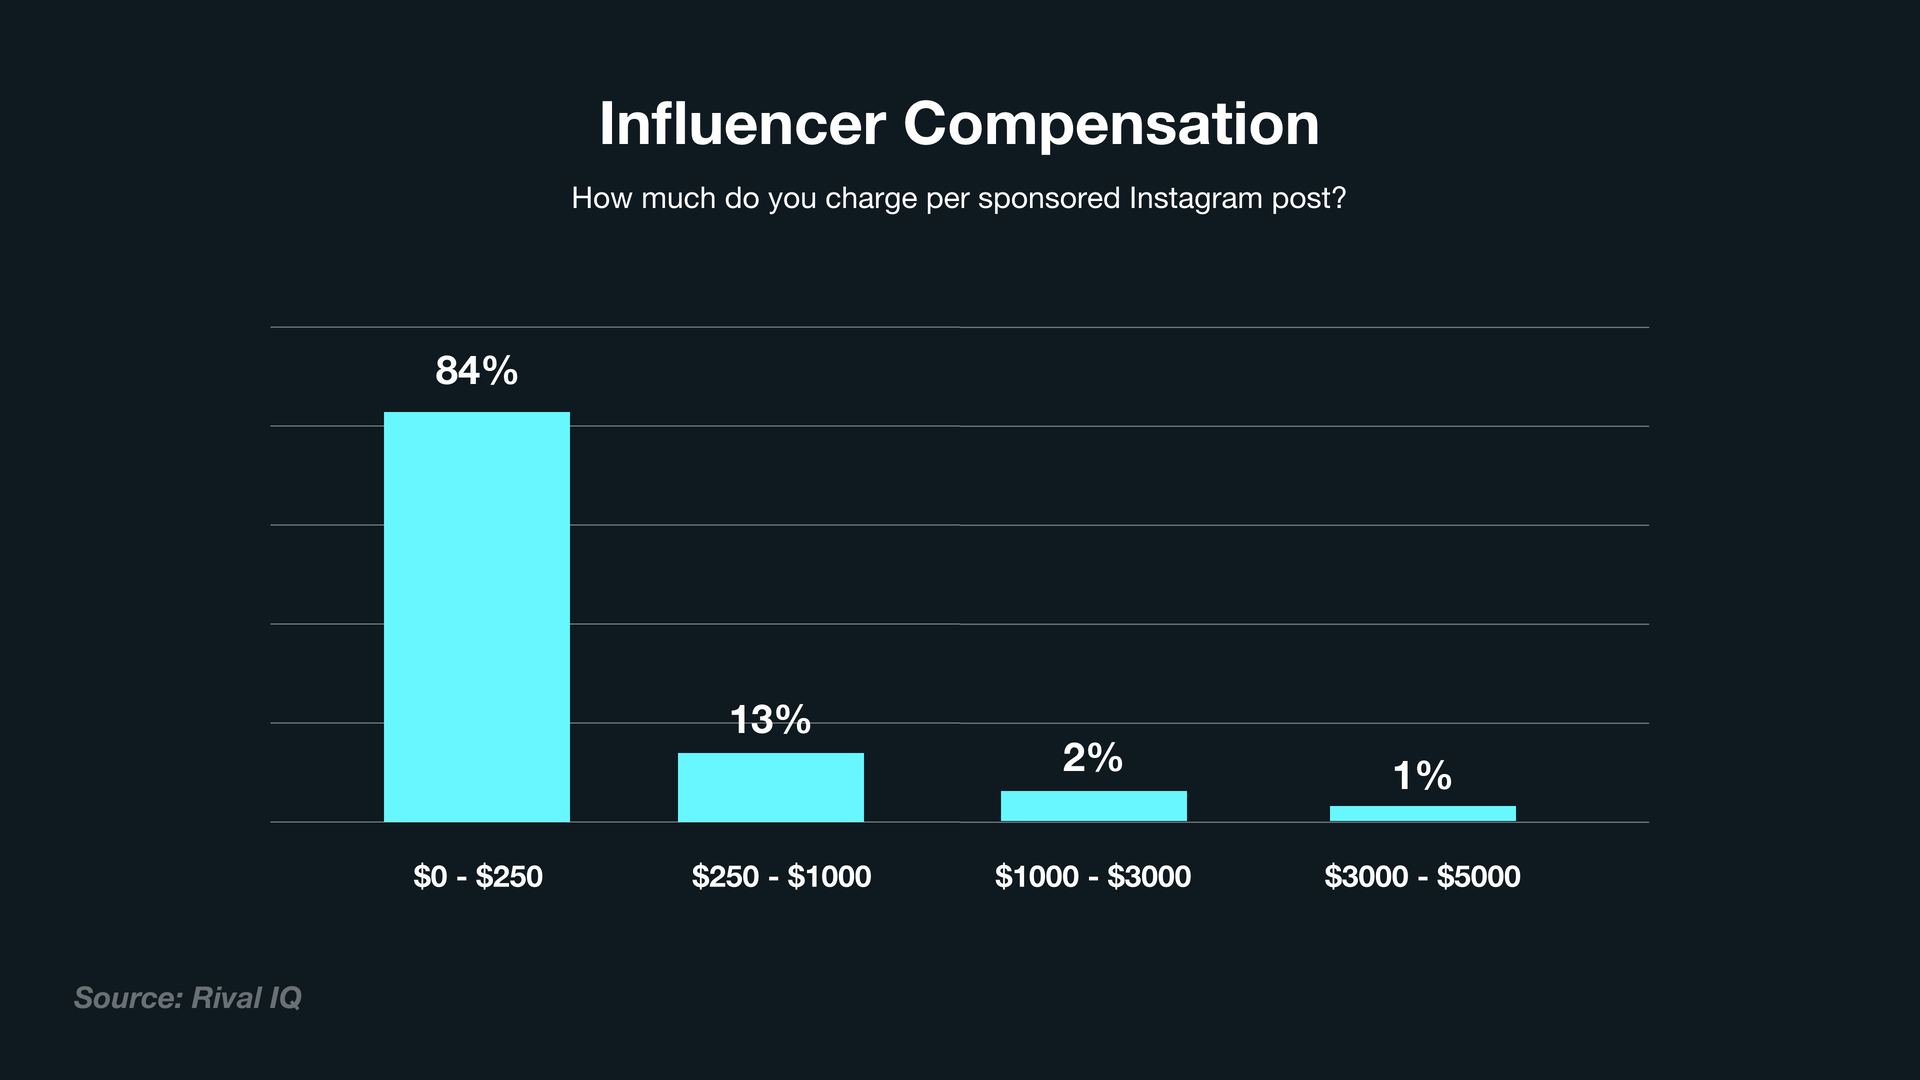 A bar chart indicating what influencers charge per post on Instagram